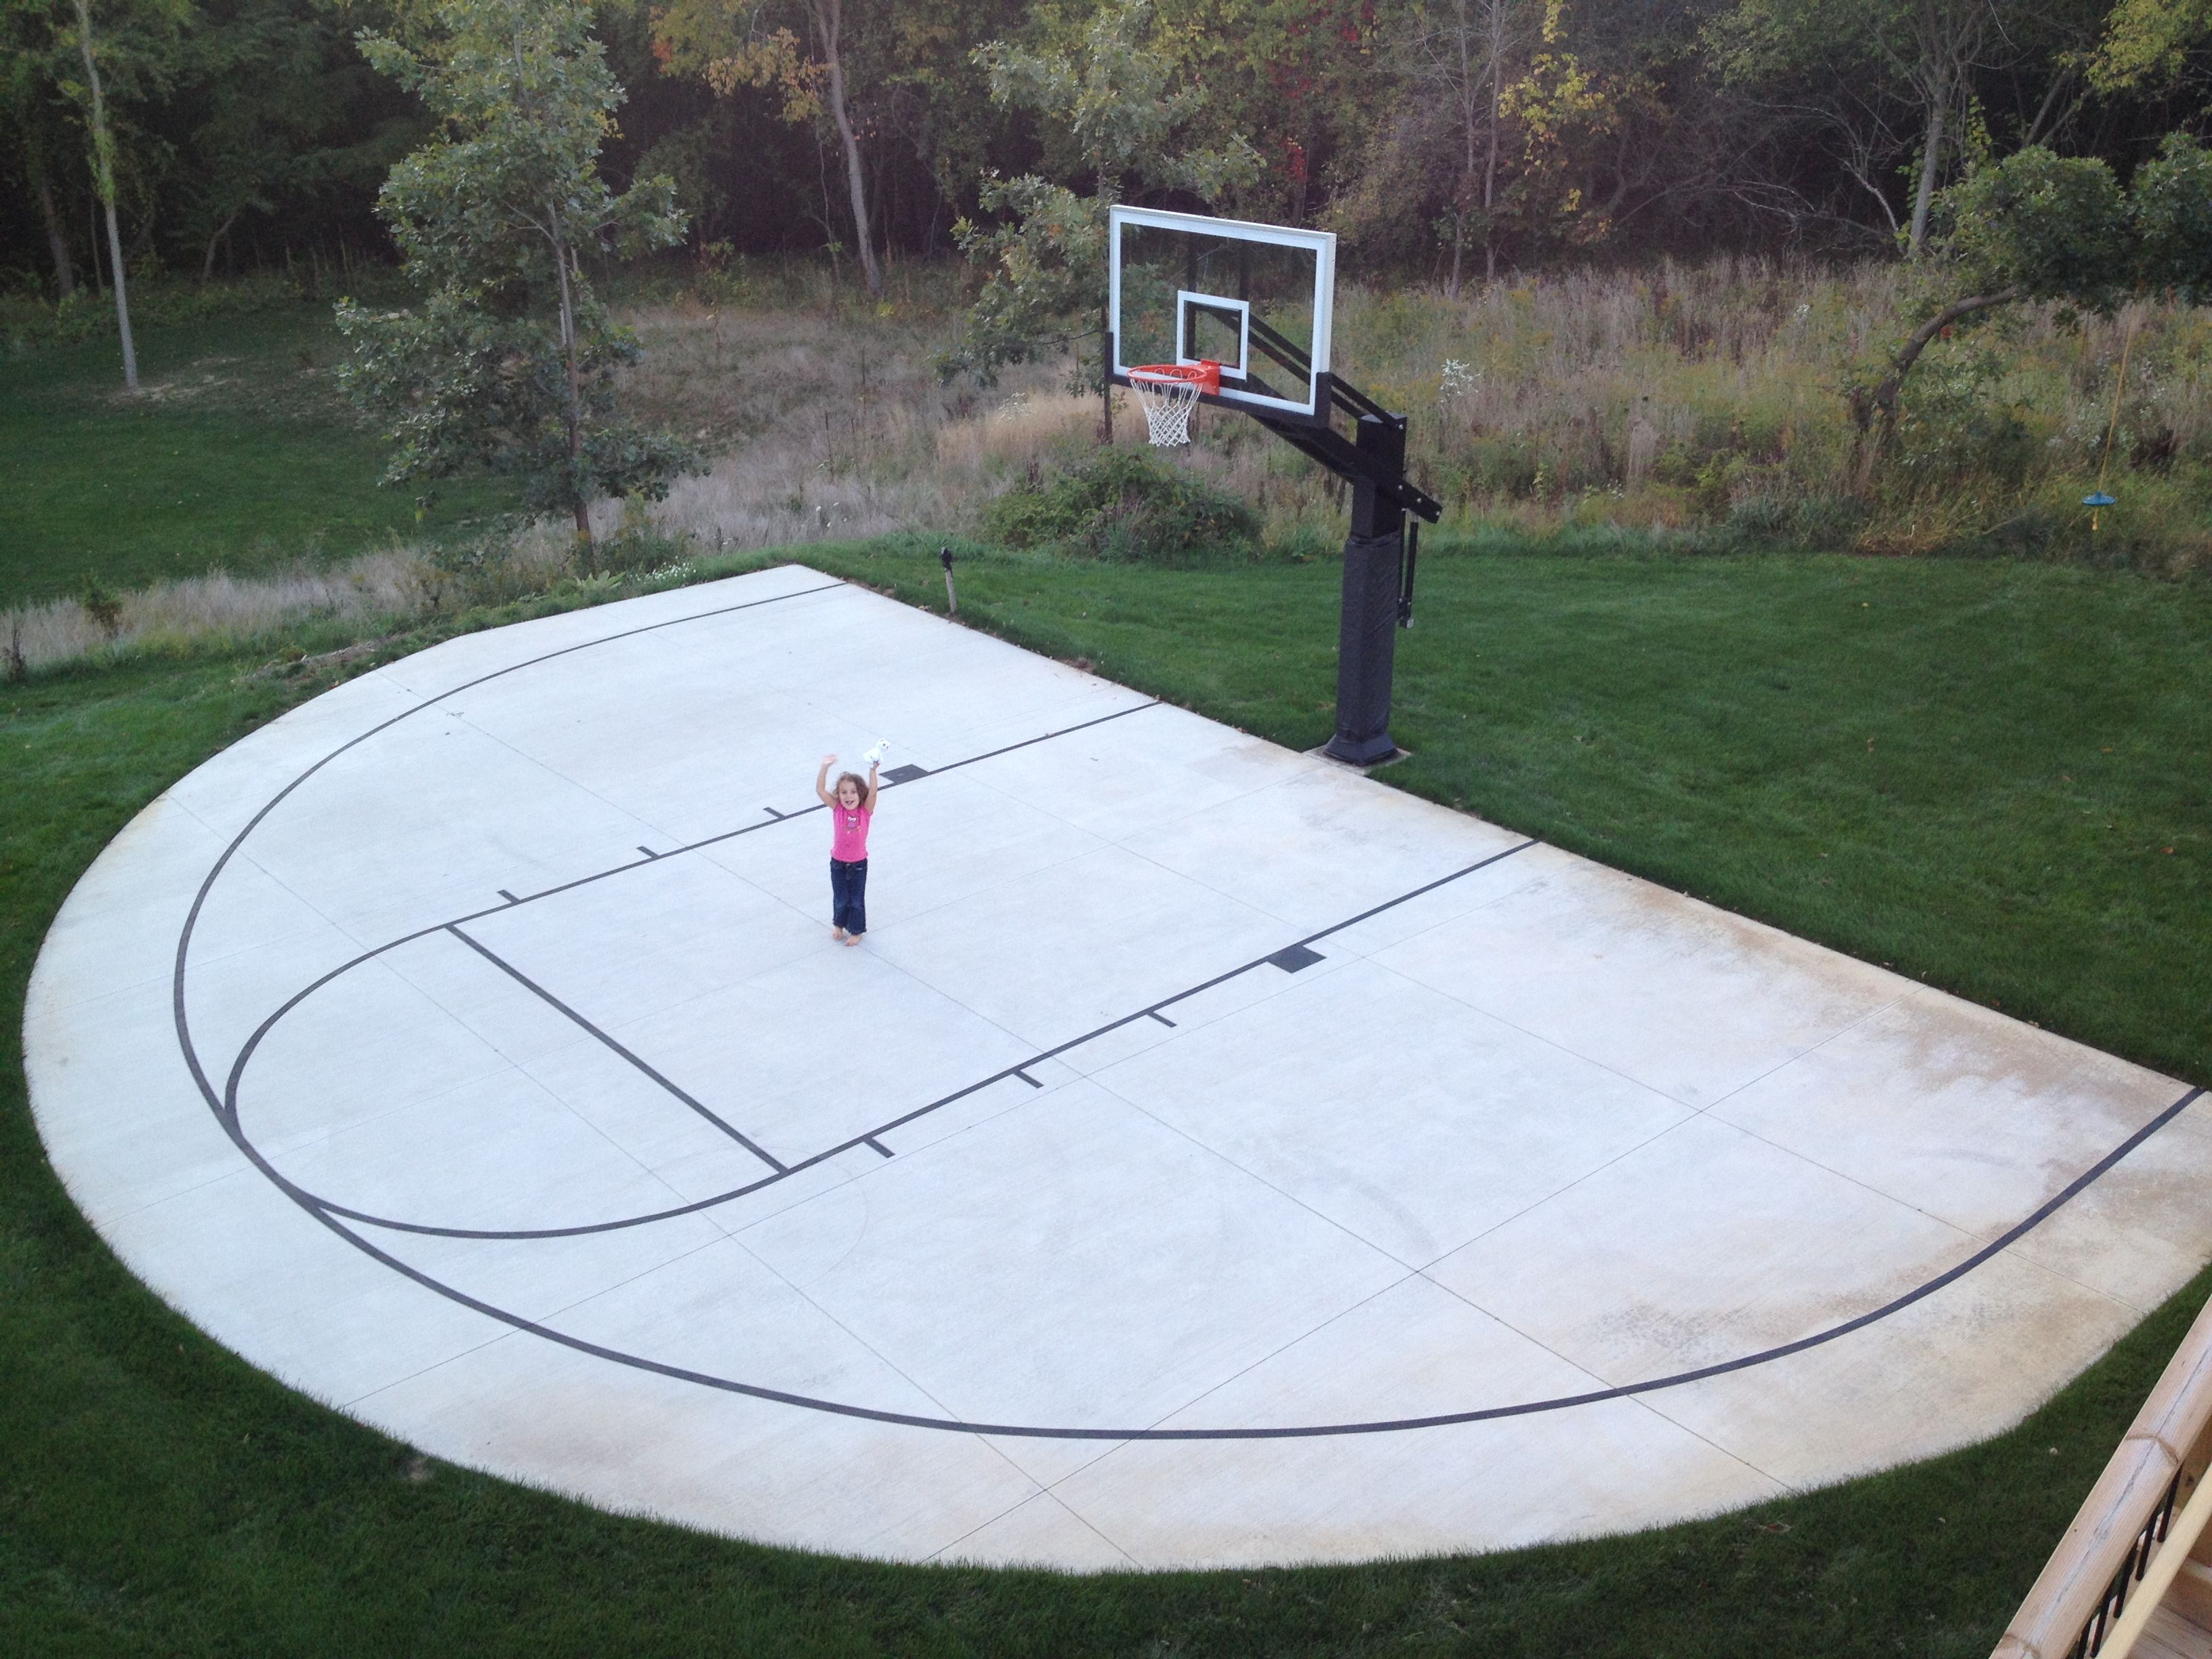 17.SIMPHOME.COM backyard basketball court ideas indoor outdoor courts elizabeth erin